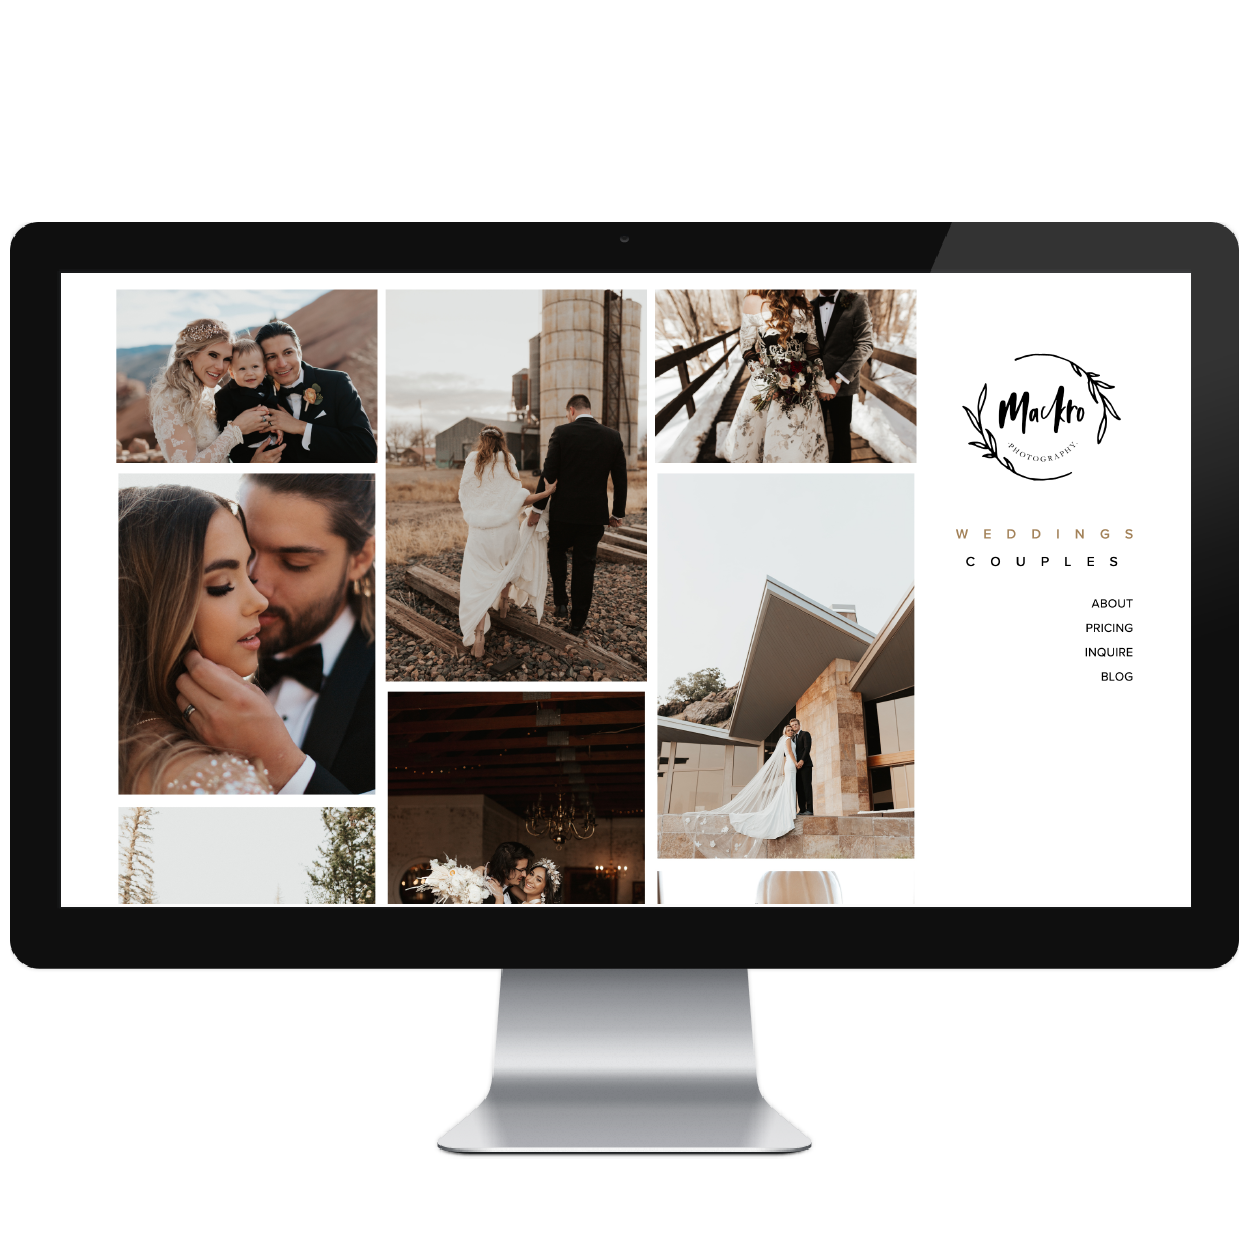 Mackro Photography // Five Design Co. custom Squarespace web design portfolio